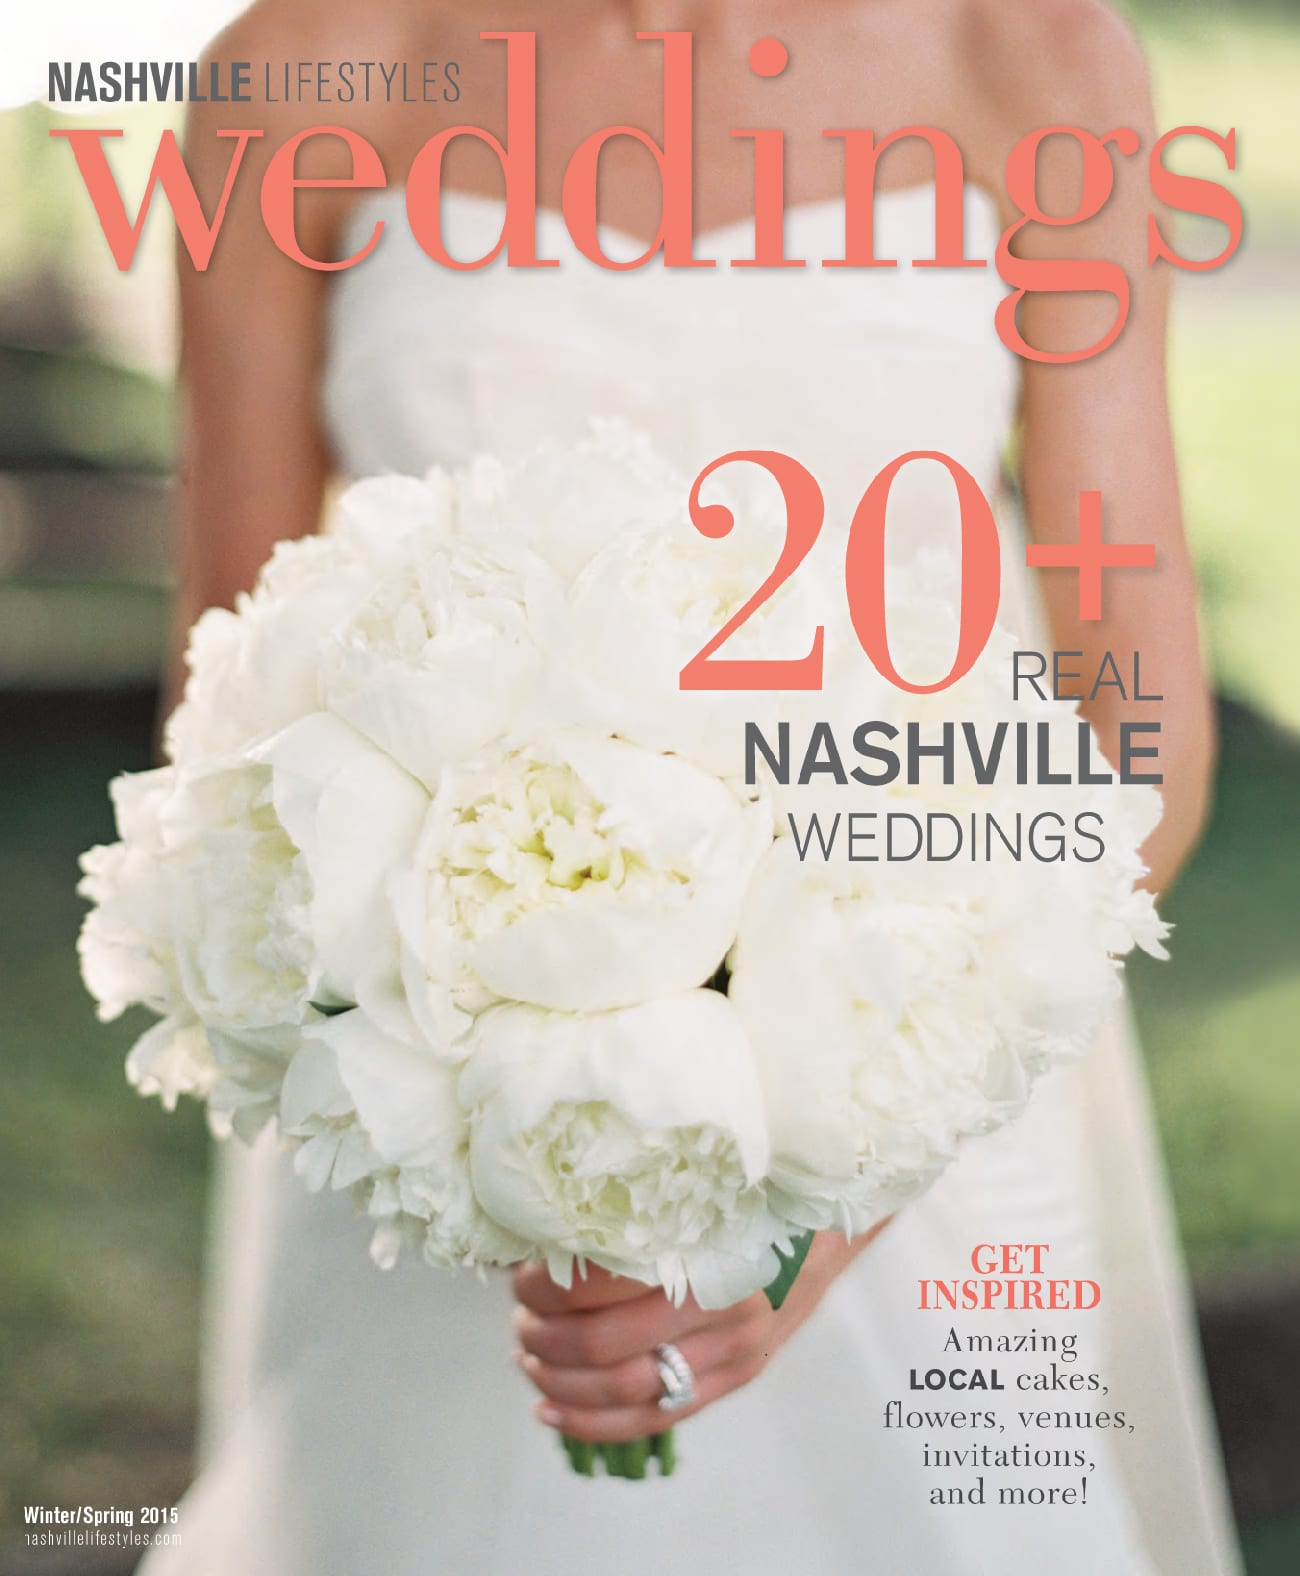 nashville lifestyles weddings winter spring 2015 - Premier W.E.D.